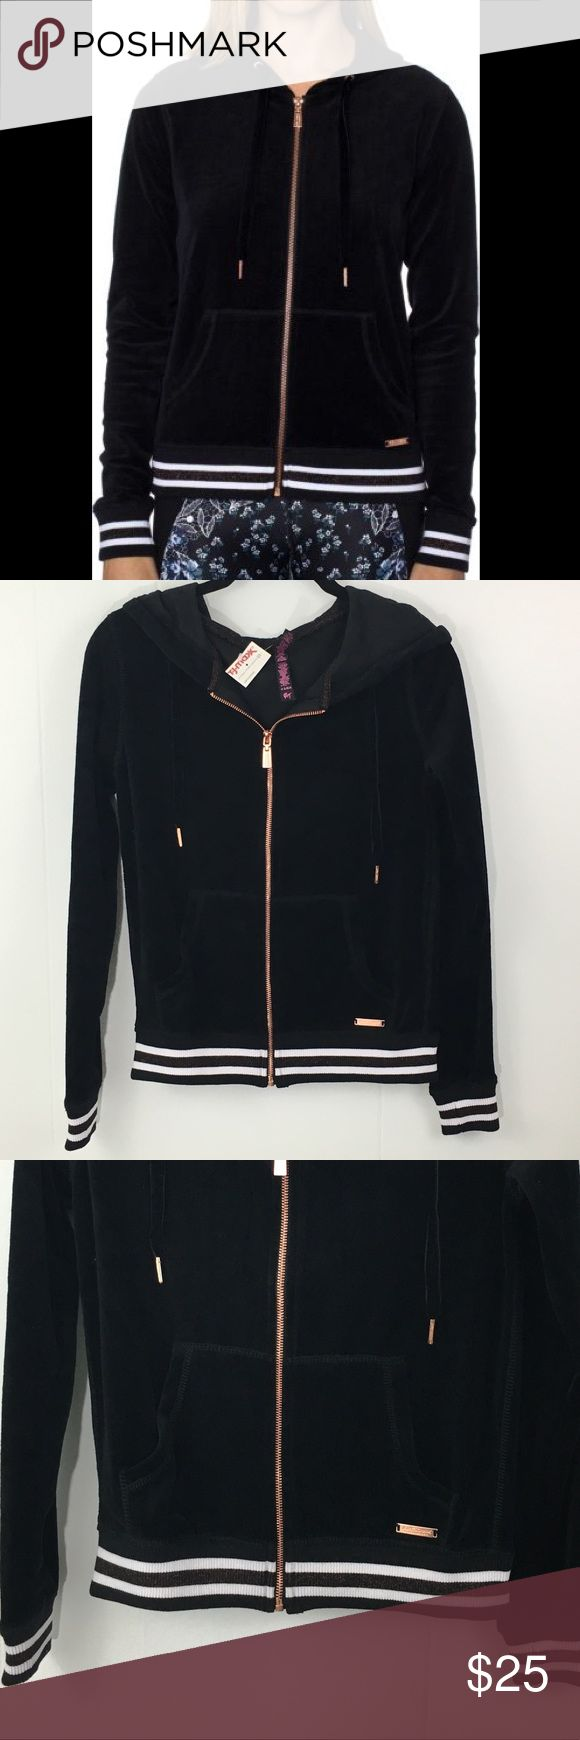 "NWT Betsey Johnson Velour Zip Up Hoodie XS New with tags, Black Velour Zip Up Hoodie.  Athletic white stripes around the button and sleeves.  Rose gold zipper and foils through the athletic stripes.  Super cute and cozy!  22"" Long, 17"" armpit to armpit when zipper. Betsey Johnson Tops Sweatshirts & Hoodies"